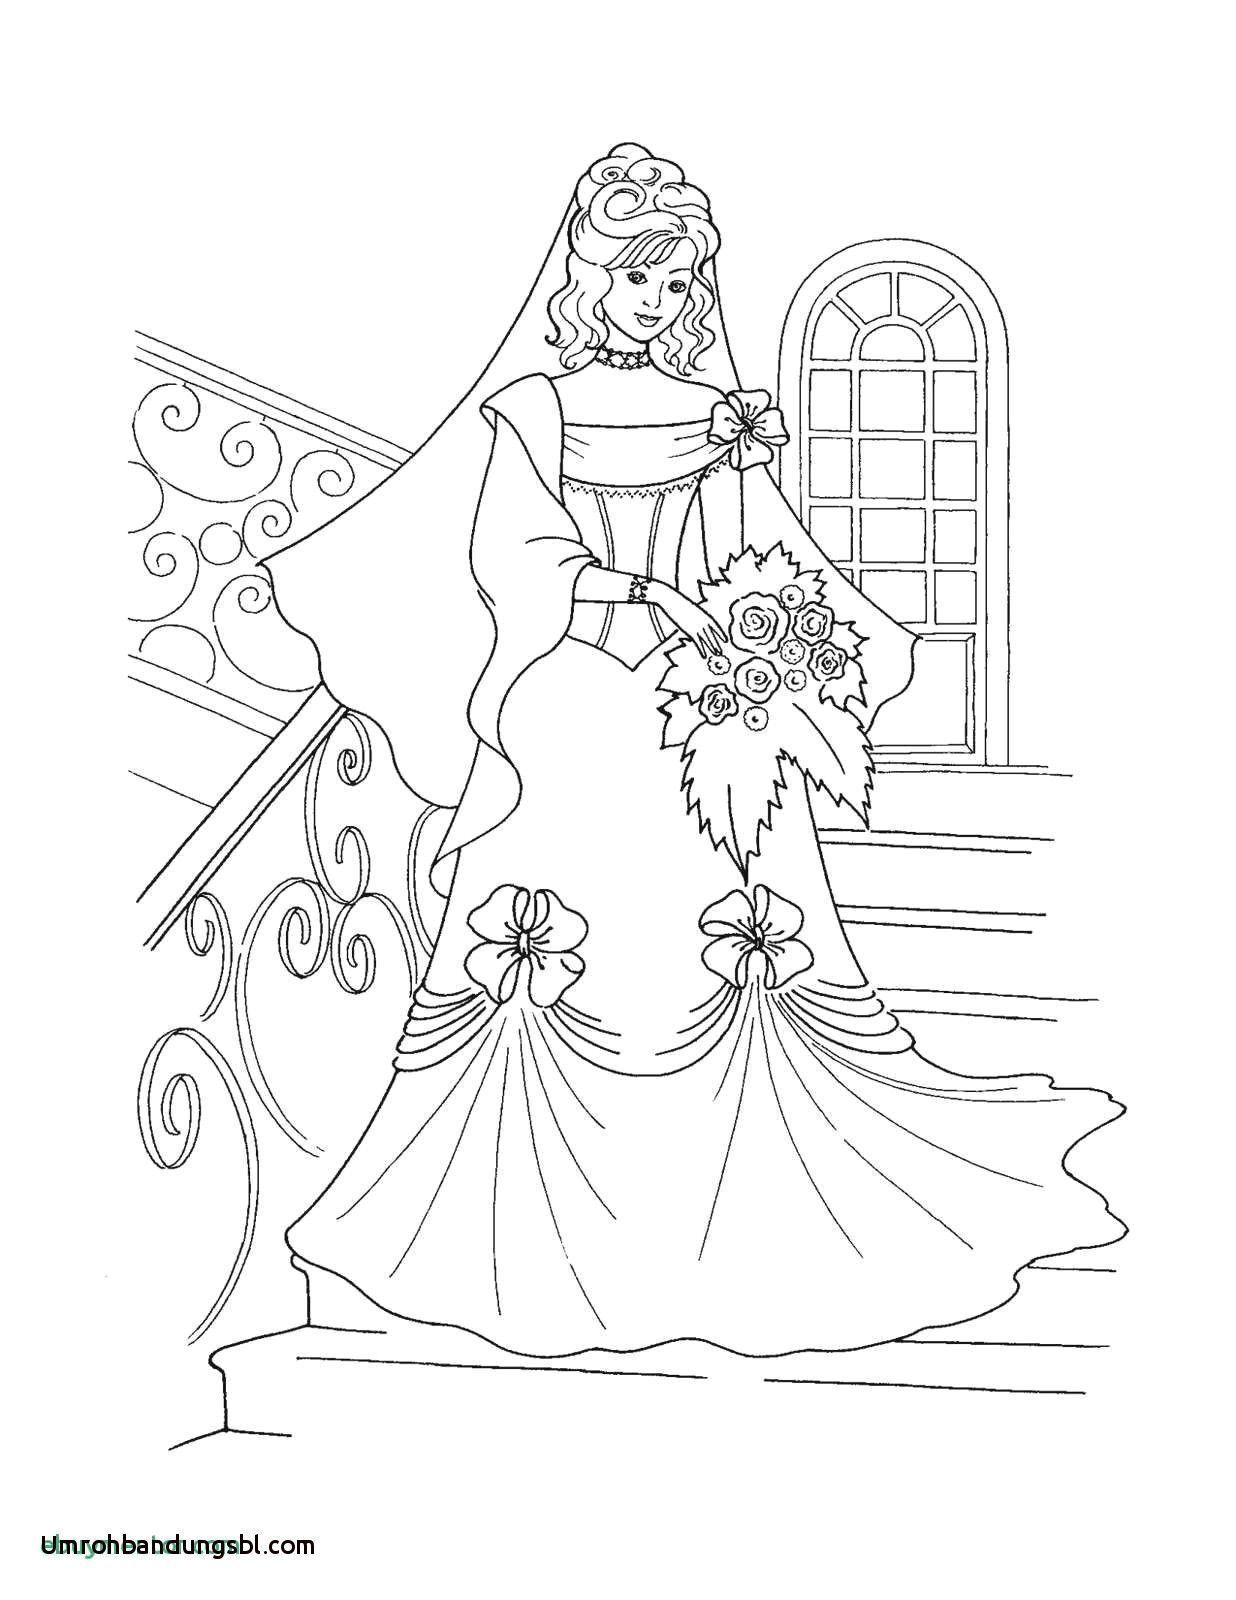 Princess Aurora Coloring Pages Free Awesome Free Coloring Pages Pj Masks Jvzooreview